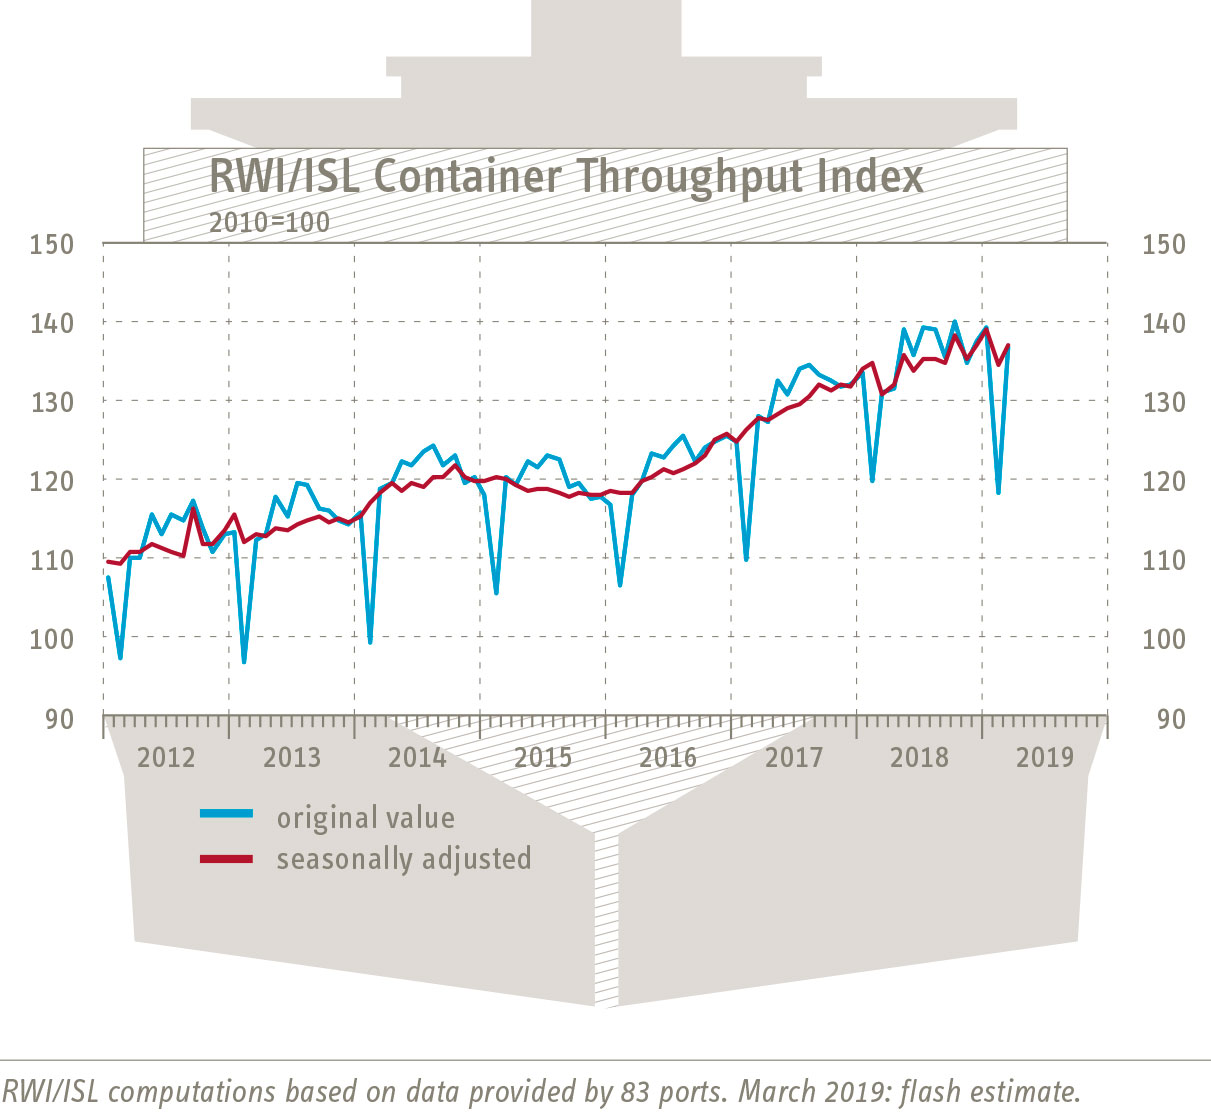 RWI/ISL Container Throughput Index: world trade recovering slightly